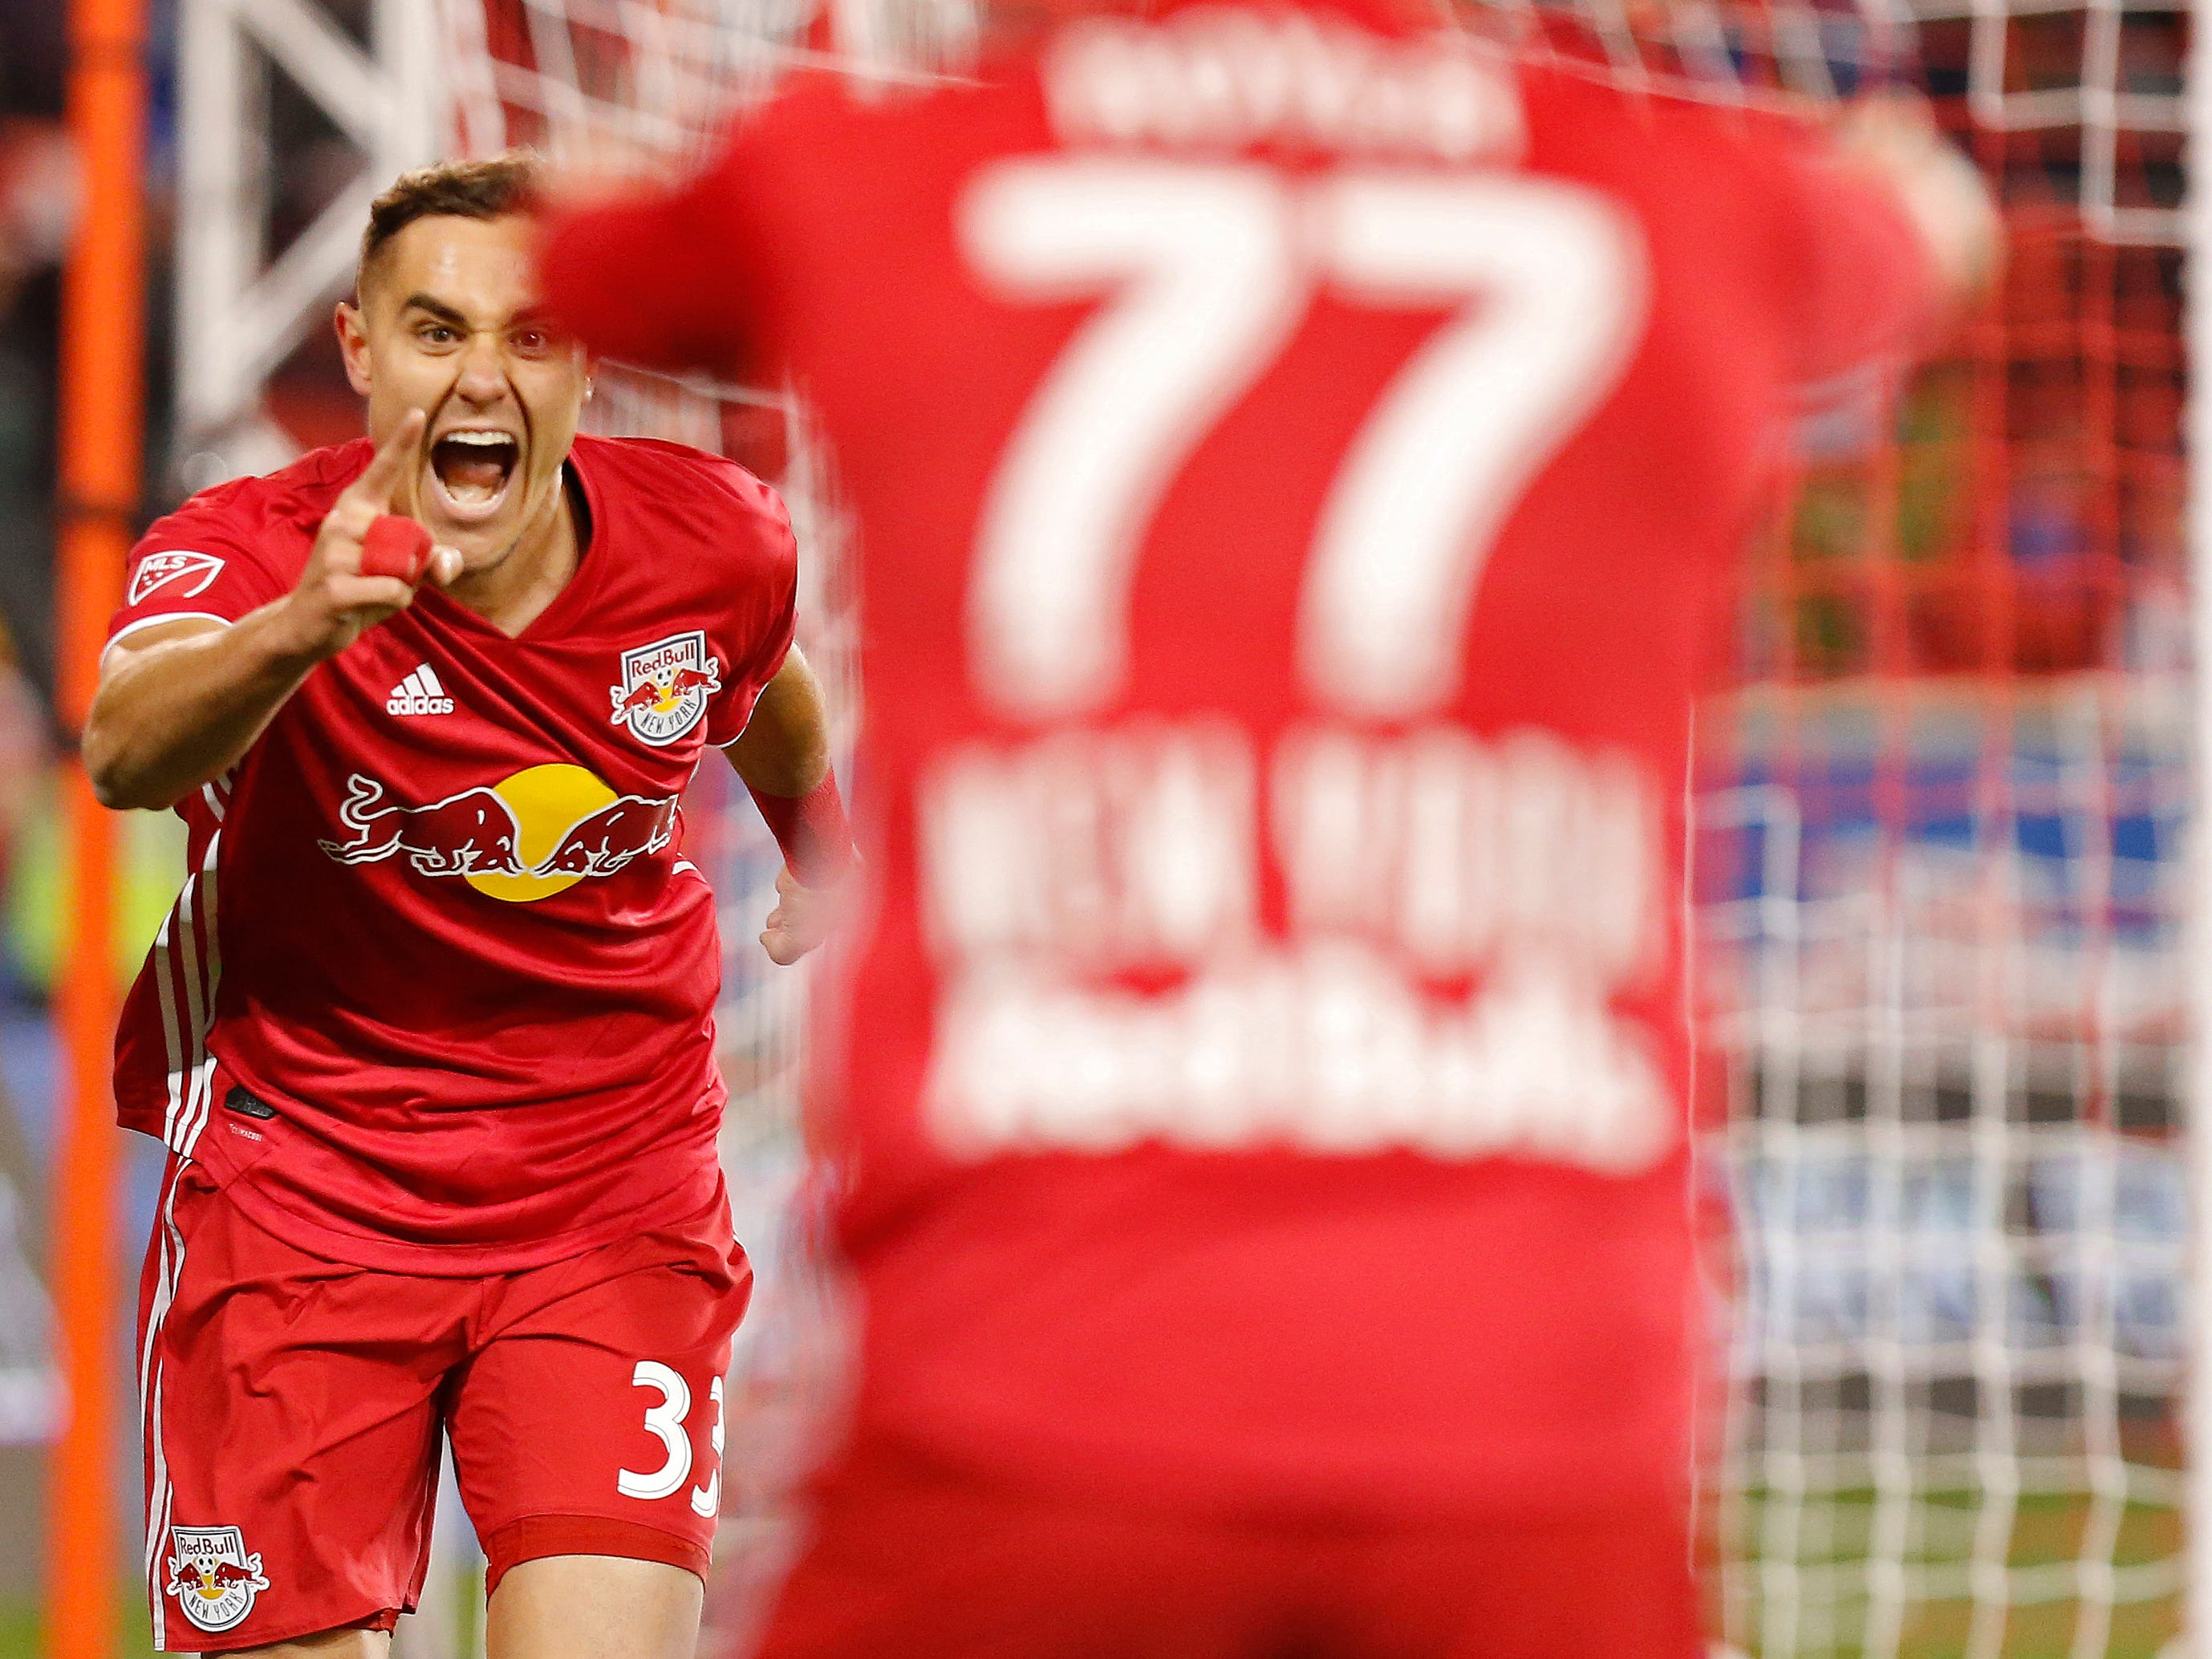 New York Red Bulls defender Aaron Long (33) celebrates with teammate Daniel Royer after scoring a goal against Columbus Crew SC in the first half in the Eastern Conference semifinal at Red Bull Arena.